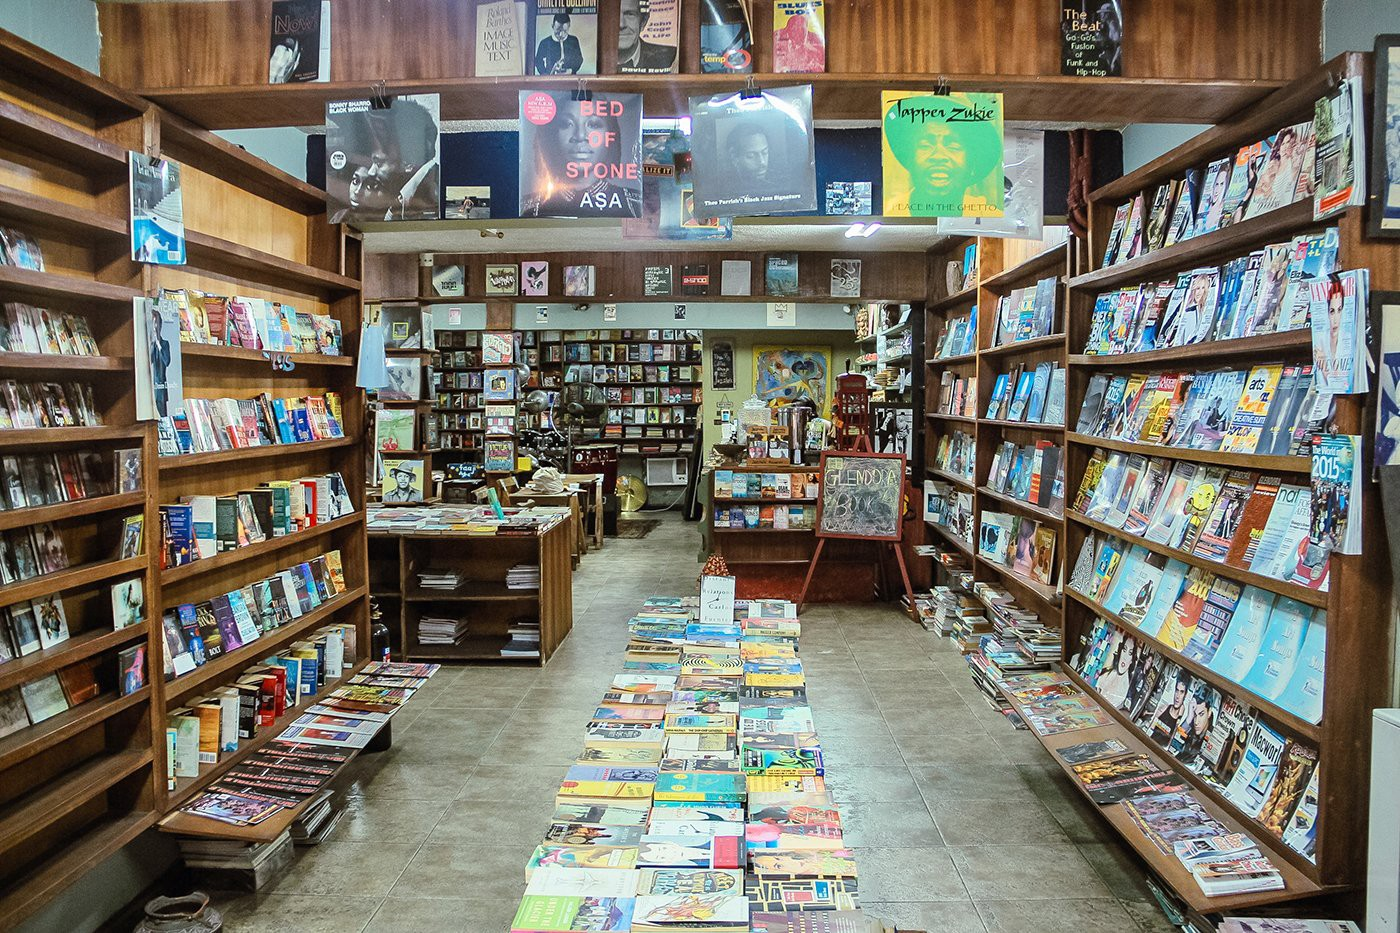 The wooden shelves of The Jazzhole are stuffed with new and secondhand novels, non-fiction books, comics, and magazines. (Pho